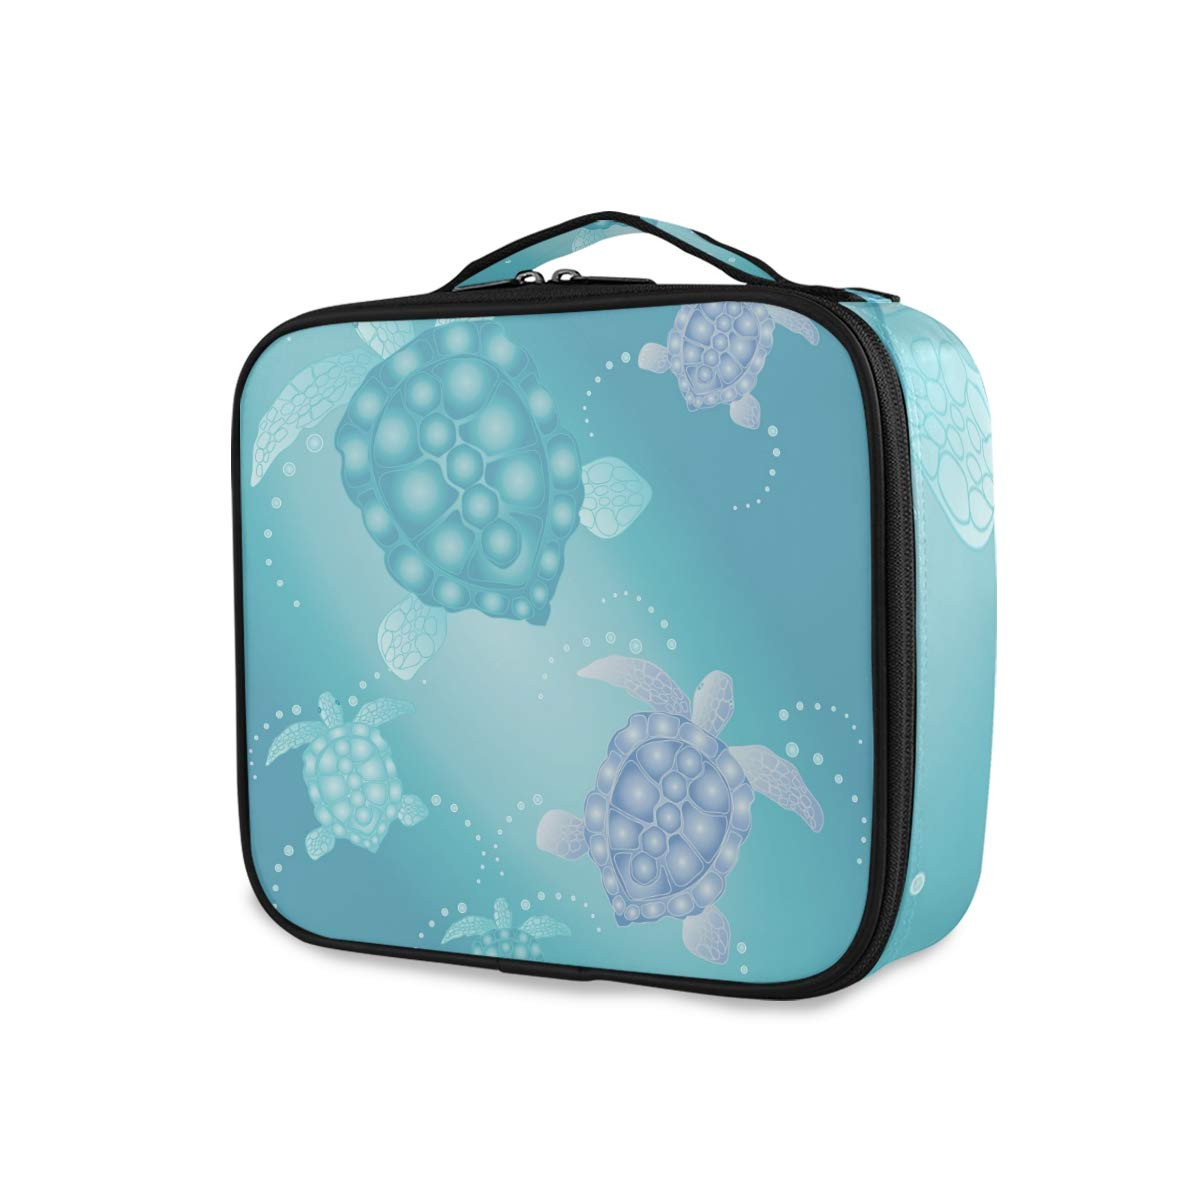 Travel Makeup Case Turtles Portable Train Cosmetic Branded goods Excellence Bag C